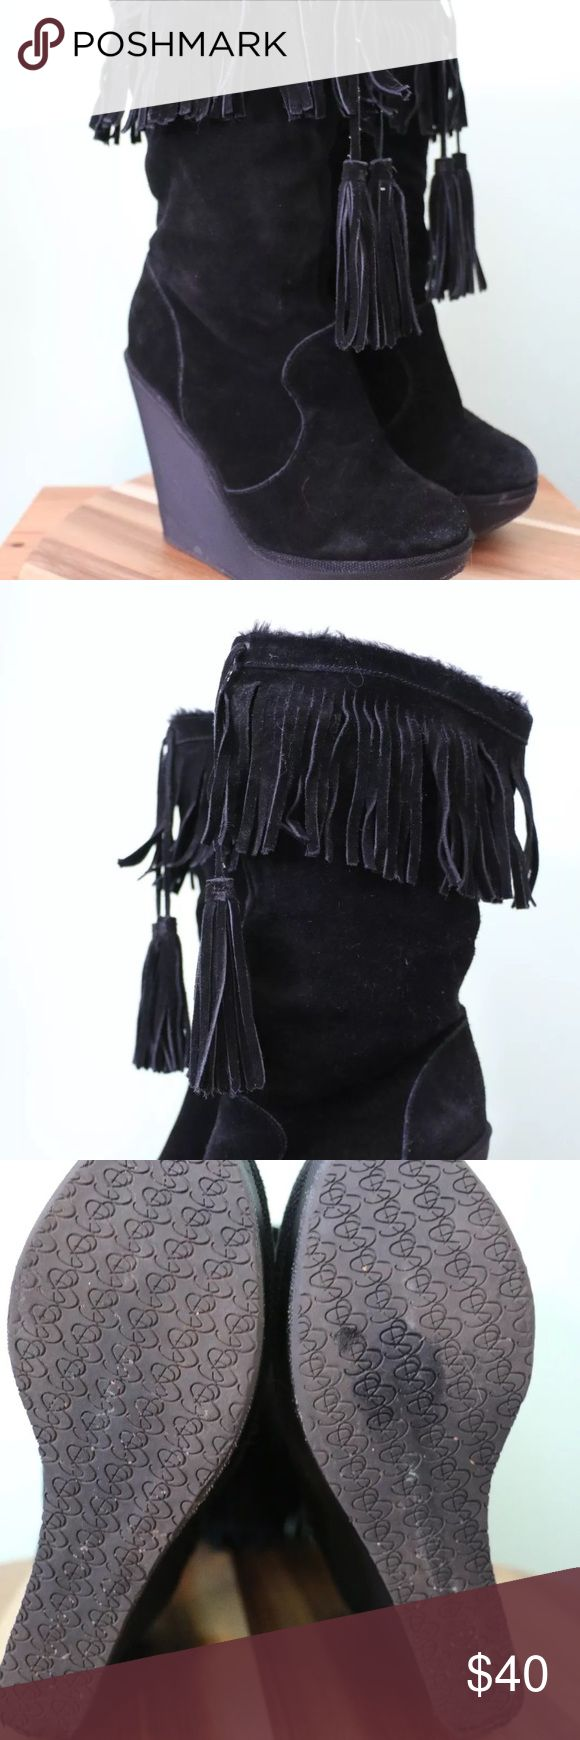 Jessica Simpson wedge fringed black boots sz 8 Jessica Simpson wedge fringed black boots sz 8 Jessica Simpson Shoes Heeled Boots